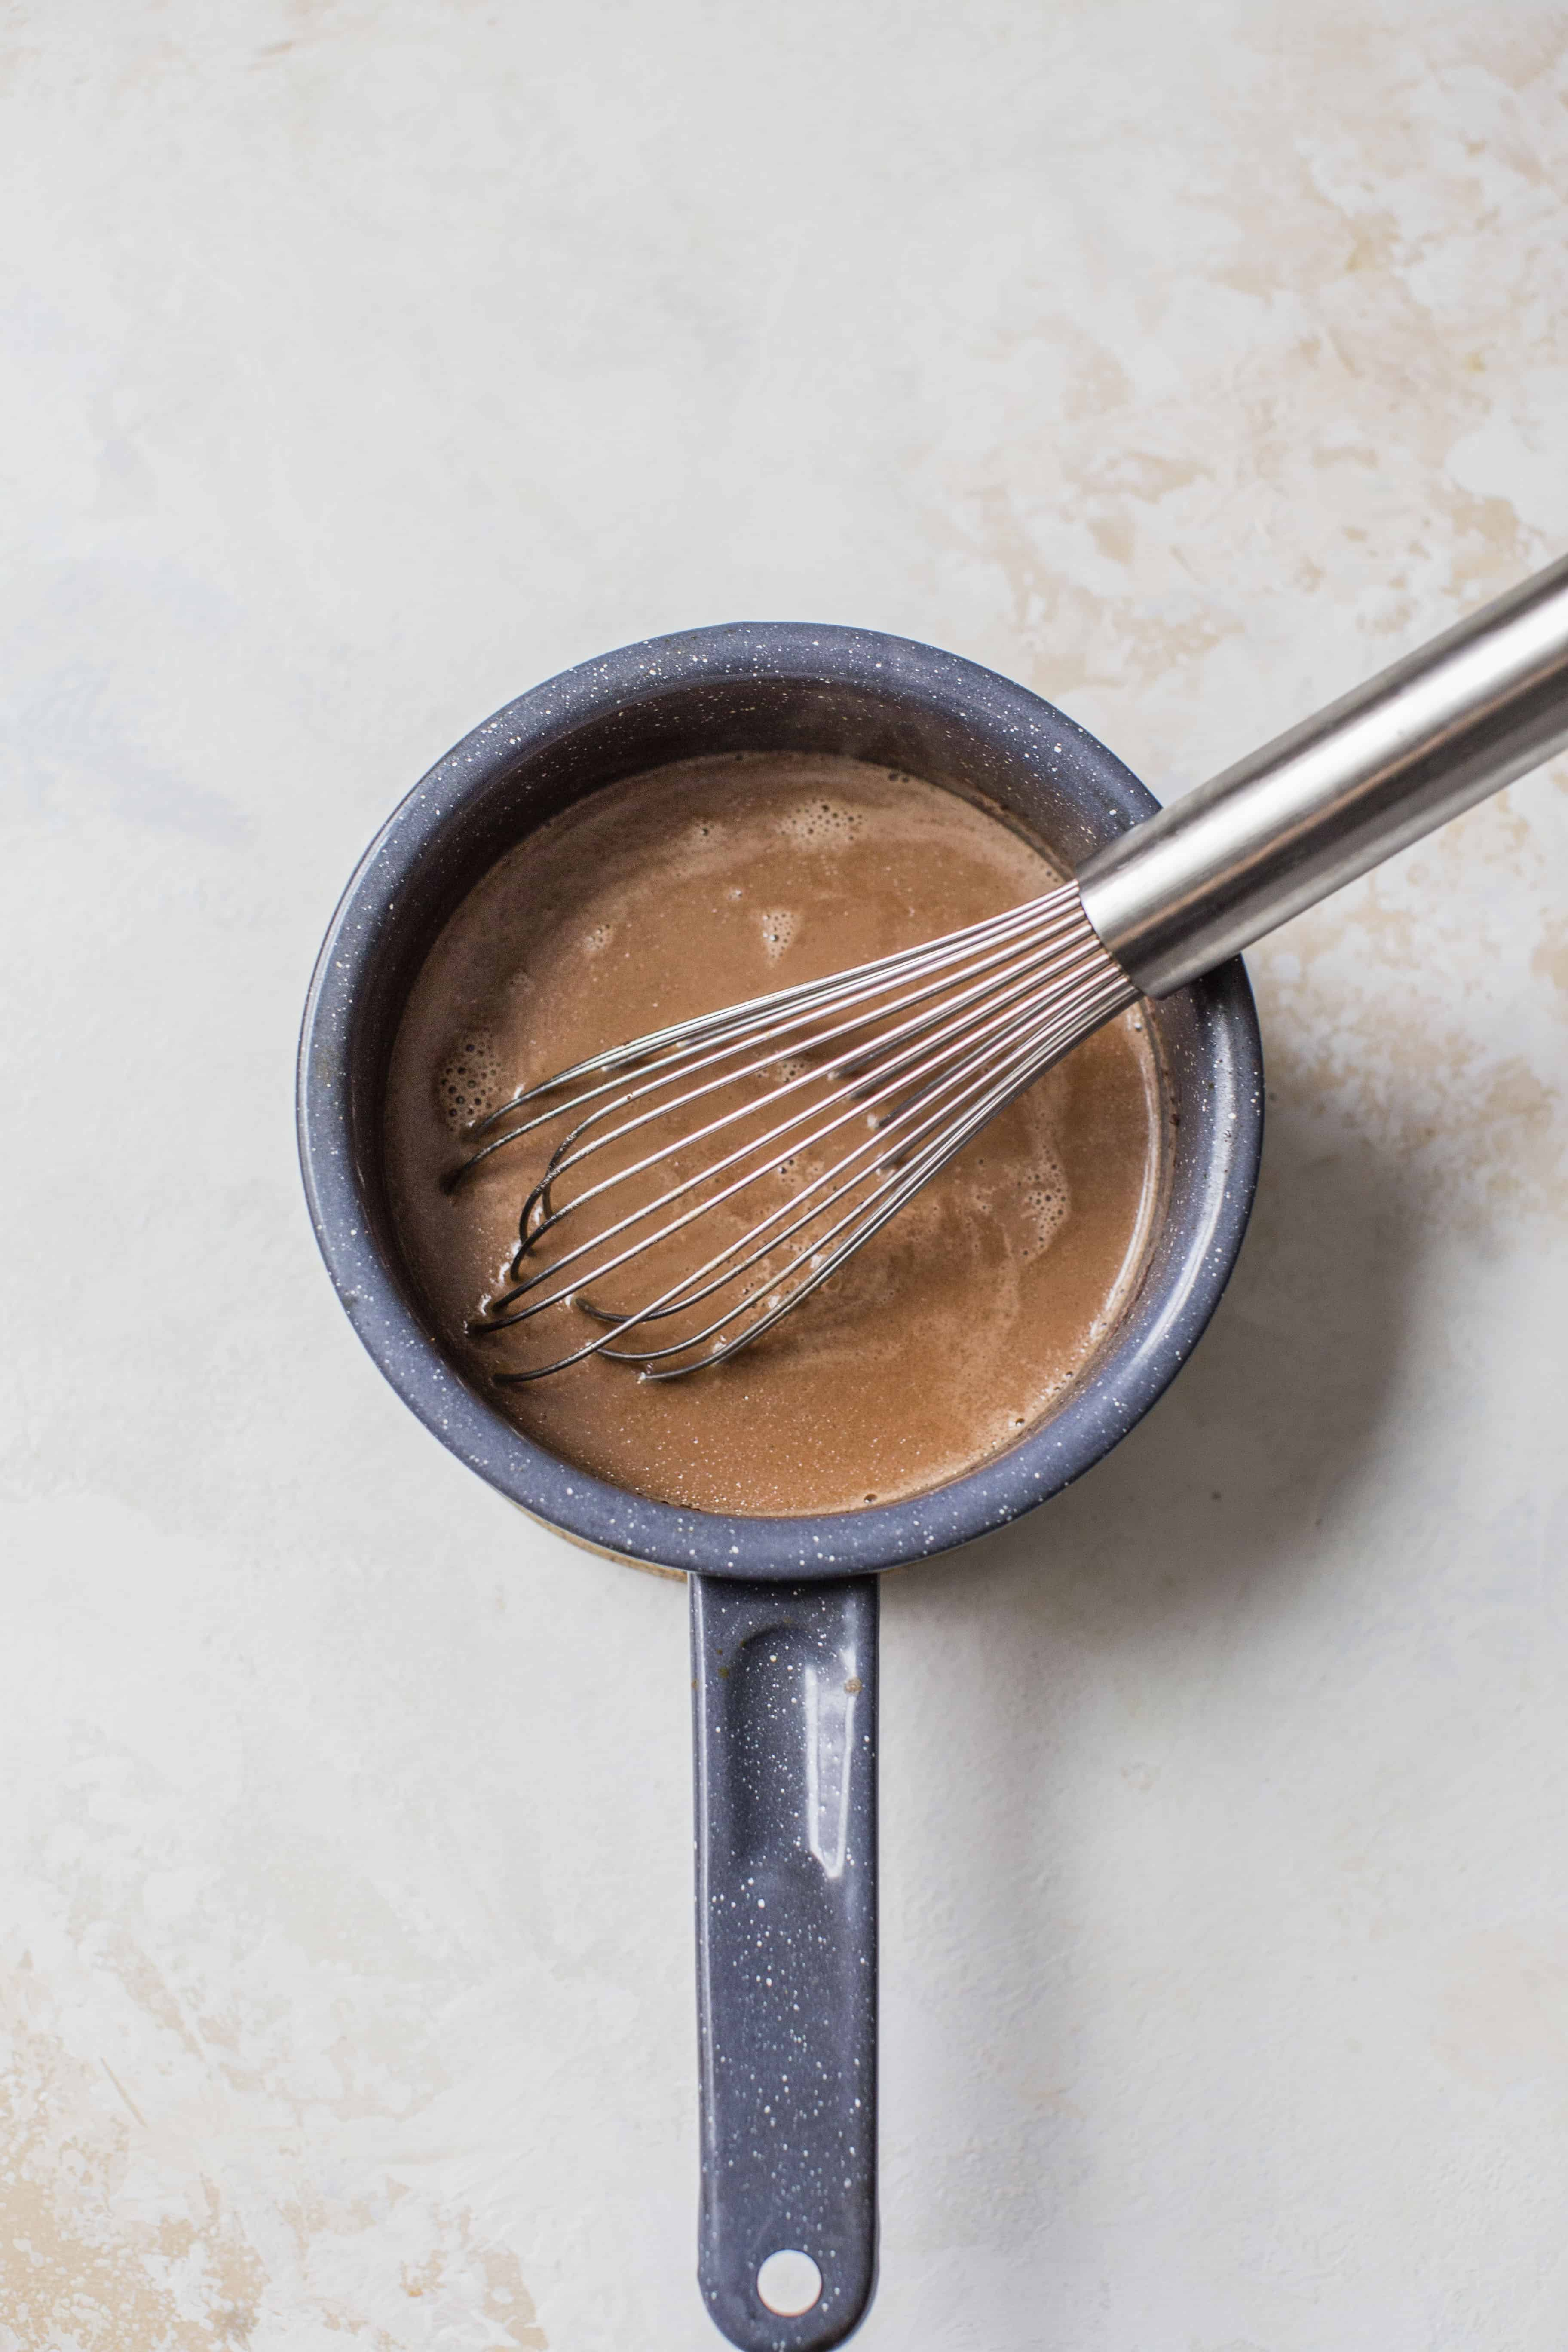 whisk in pan of chocolate peppermint creamer